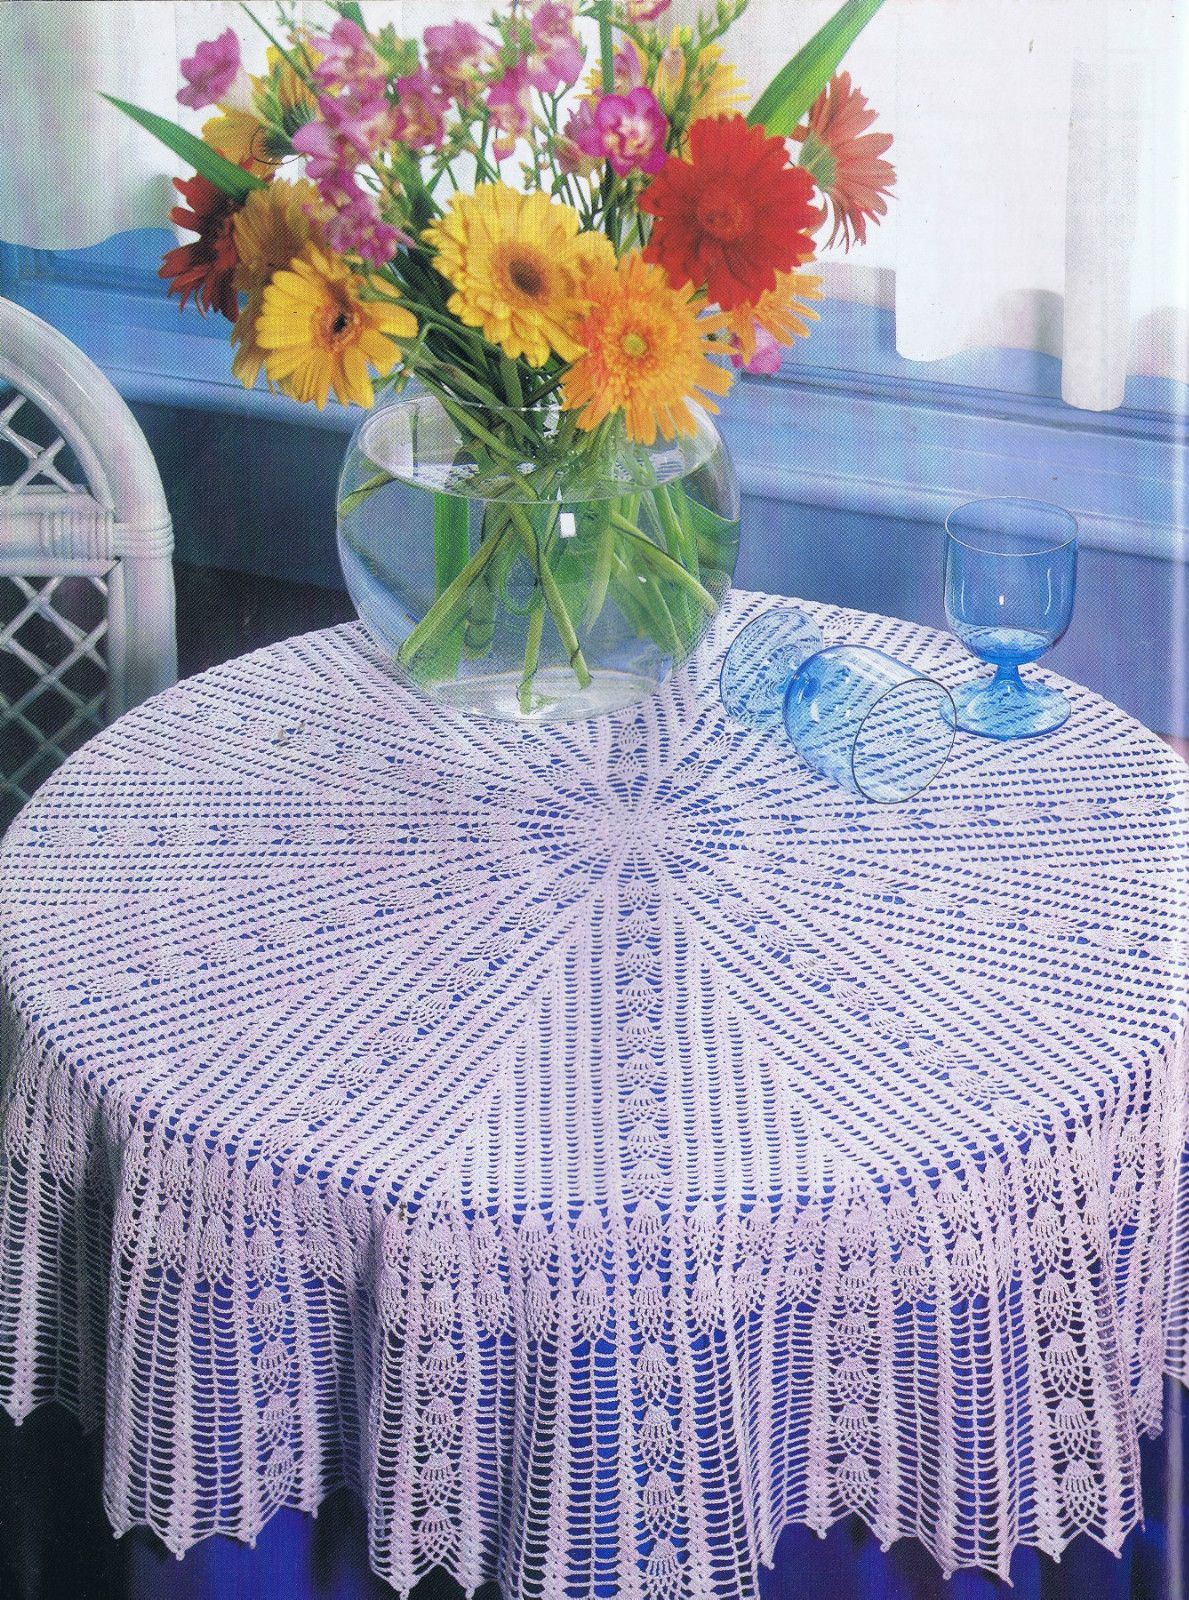 Filet crochet patterns lace lamp shade pillows tablecloth runners filet crochet patterns lace lamp shade pillows tablecloth runners doily bedsprea ebay dt1010fo